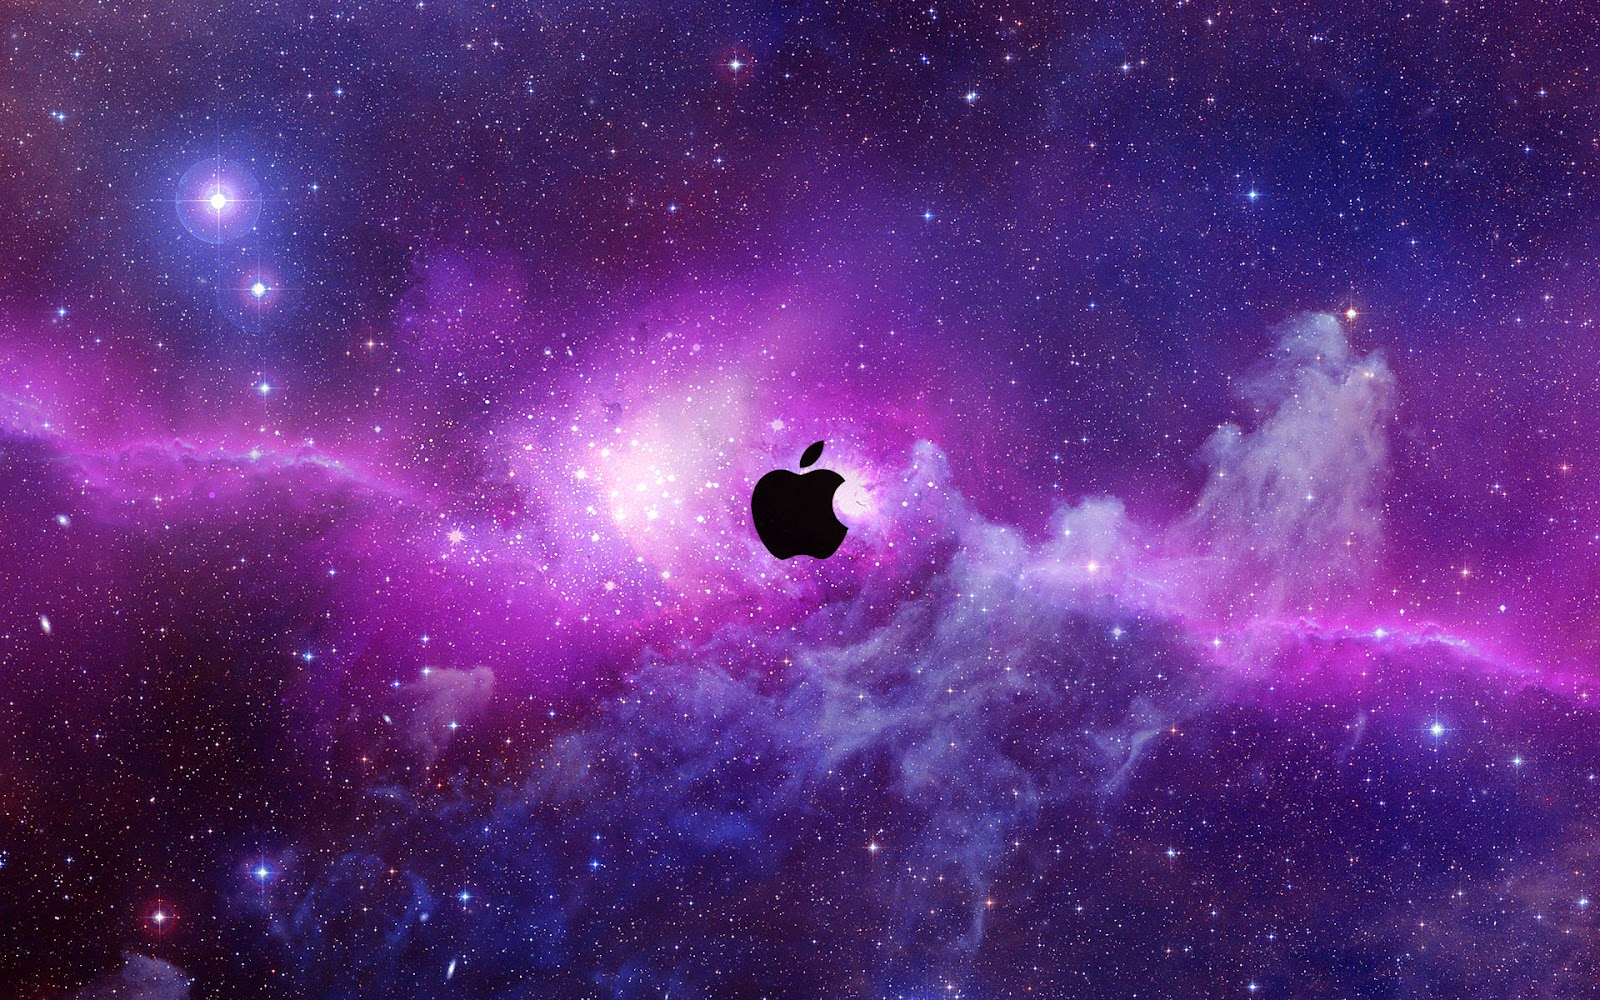 Wallpaper Hd Hd Wallpaper Mac